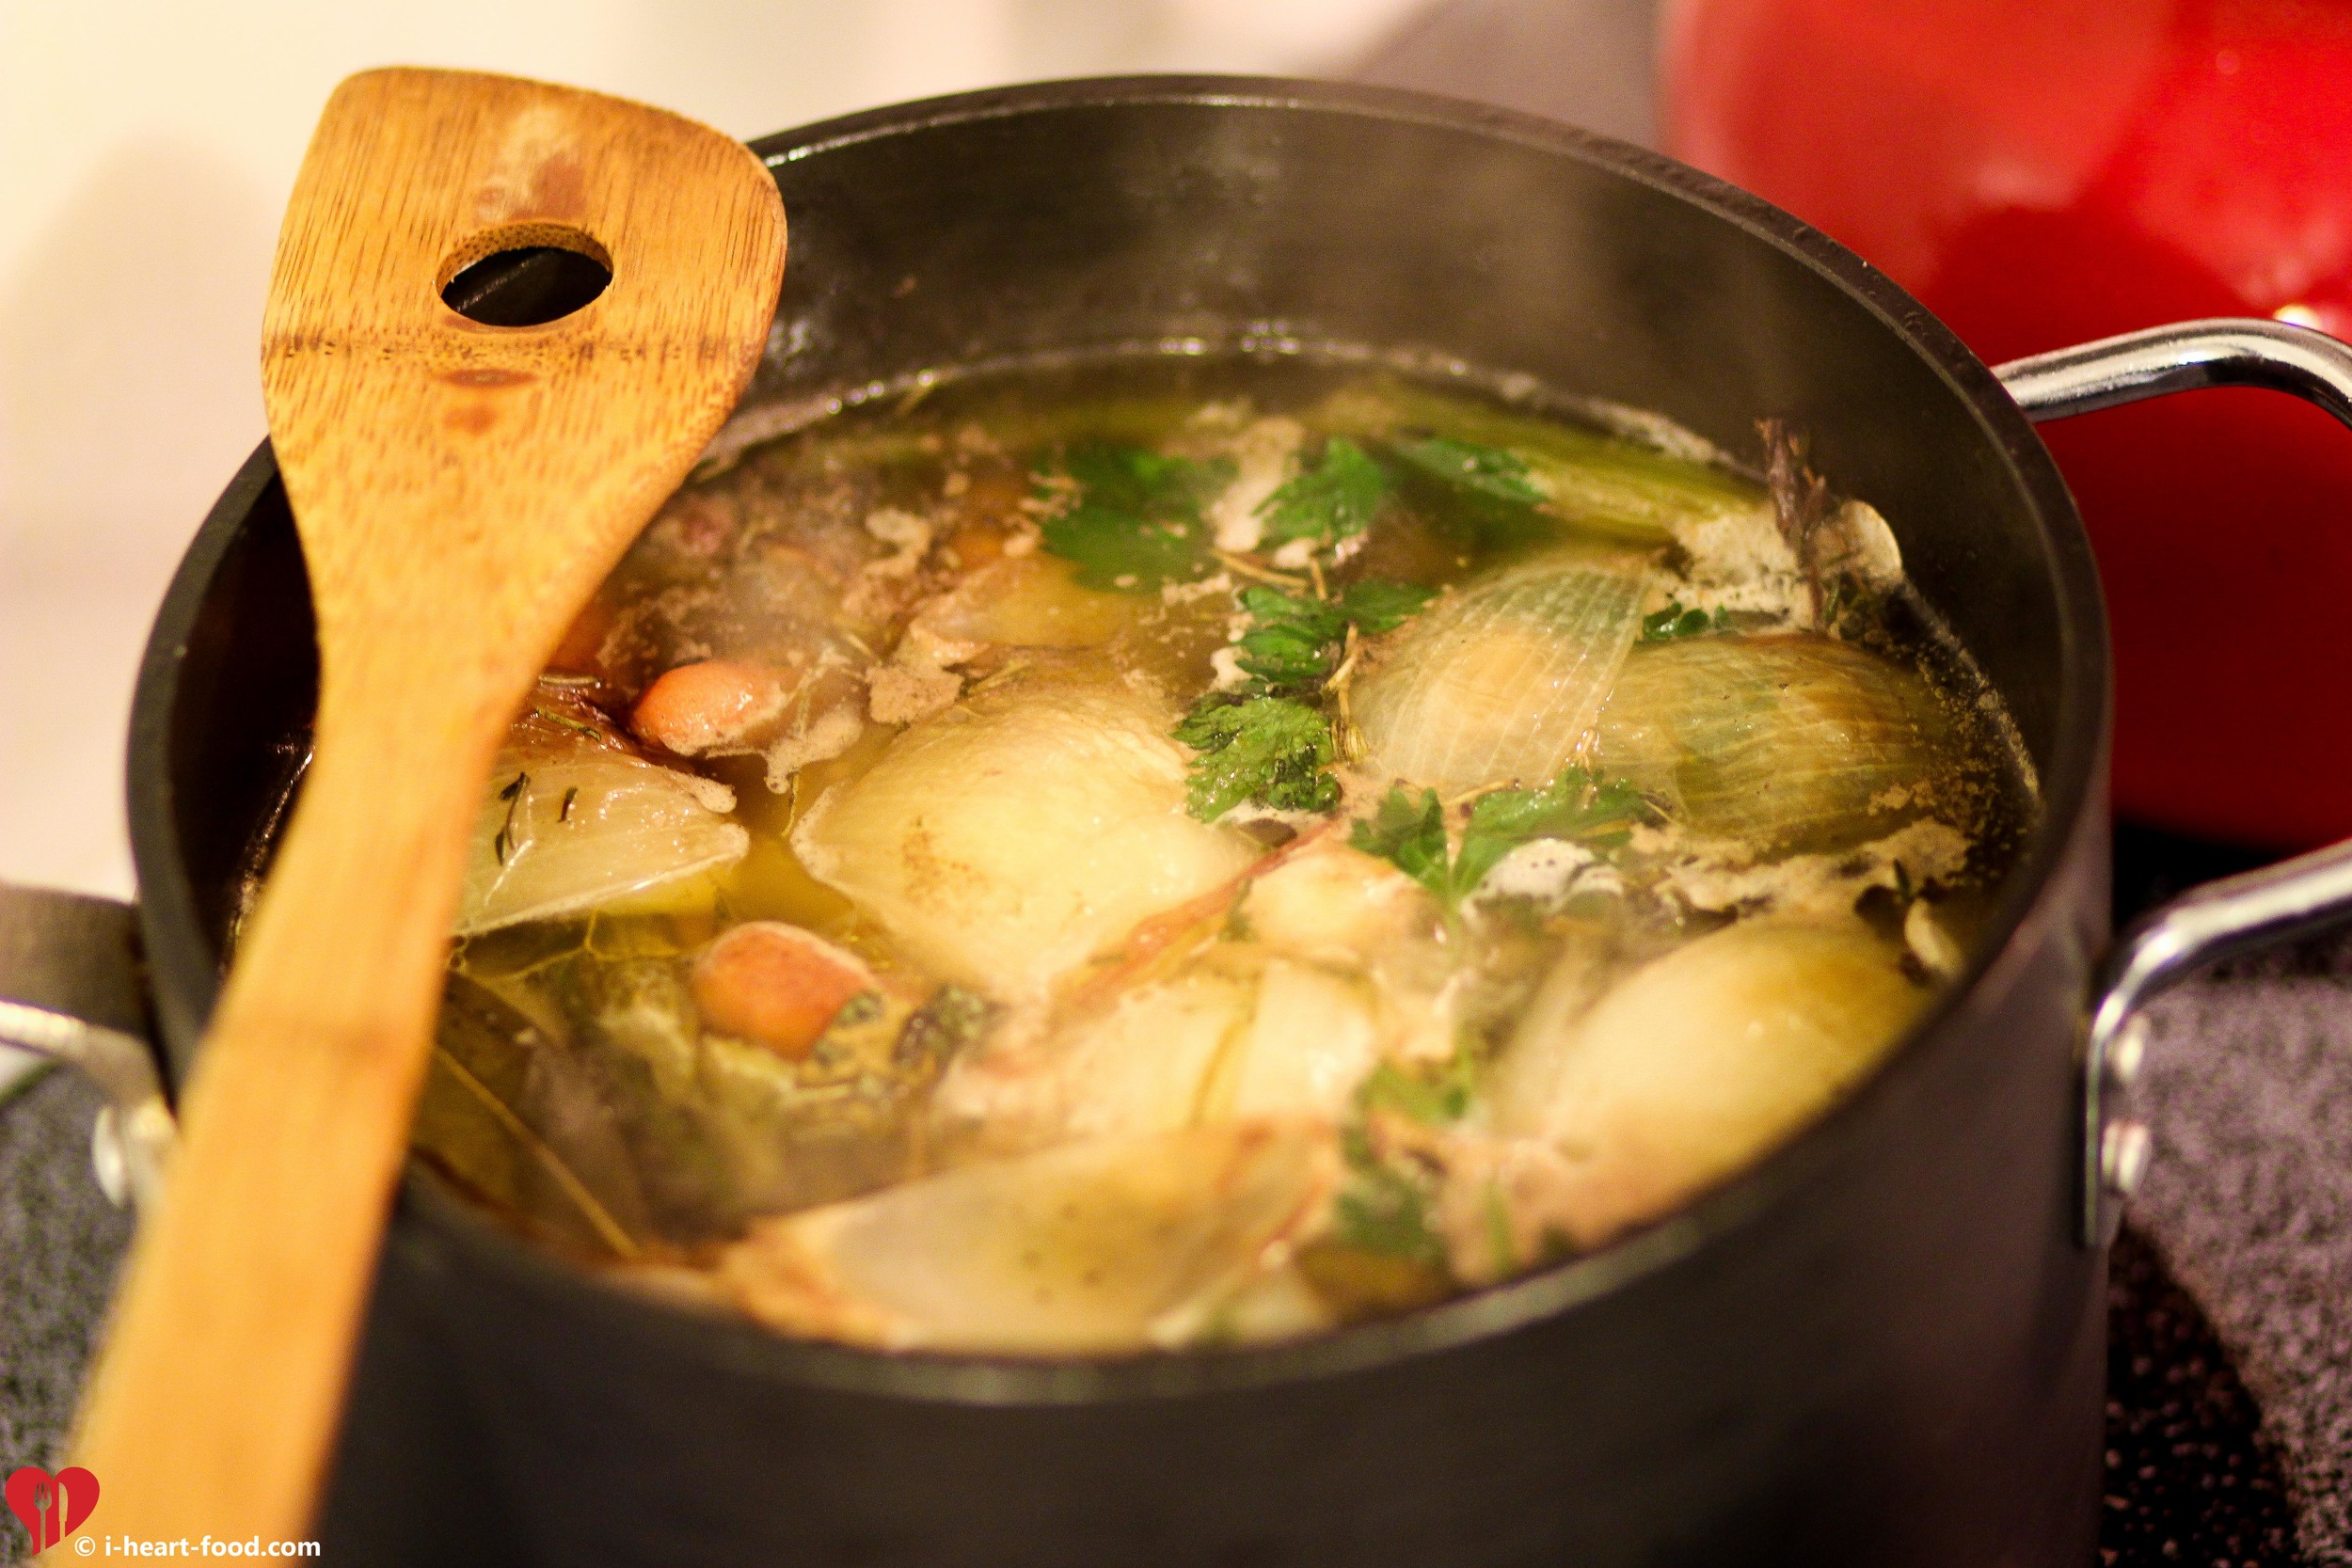 Make a broth with the giblets and turkey neck